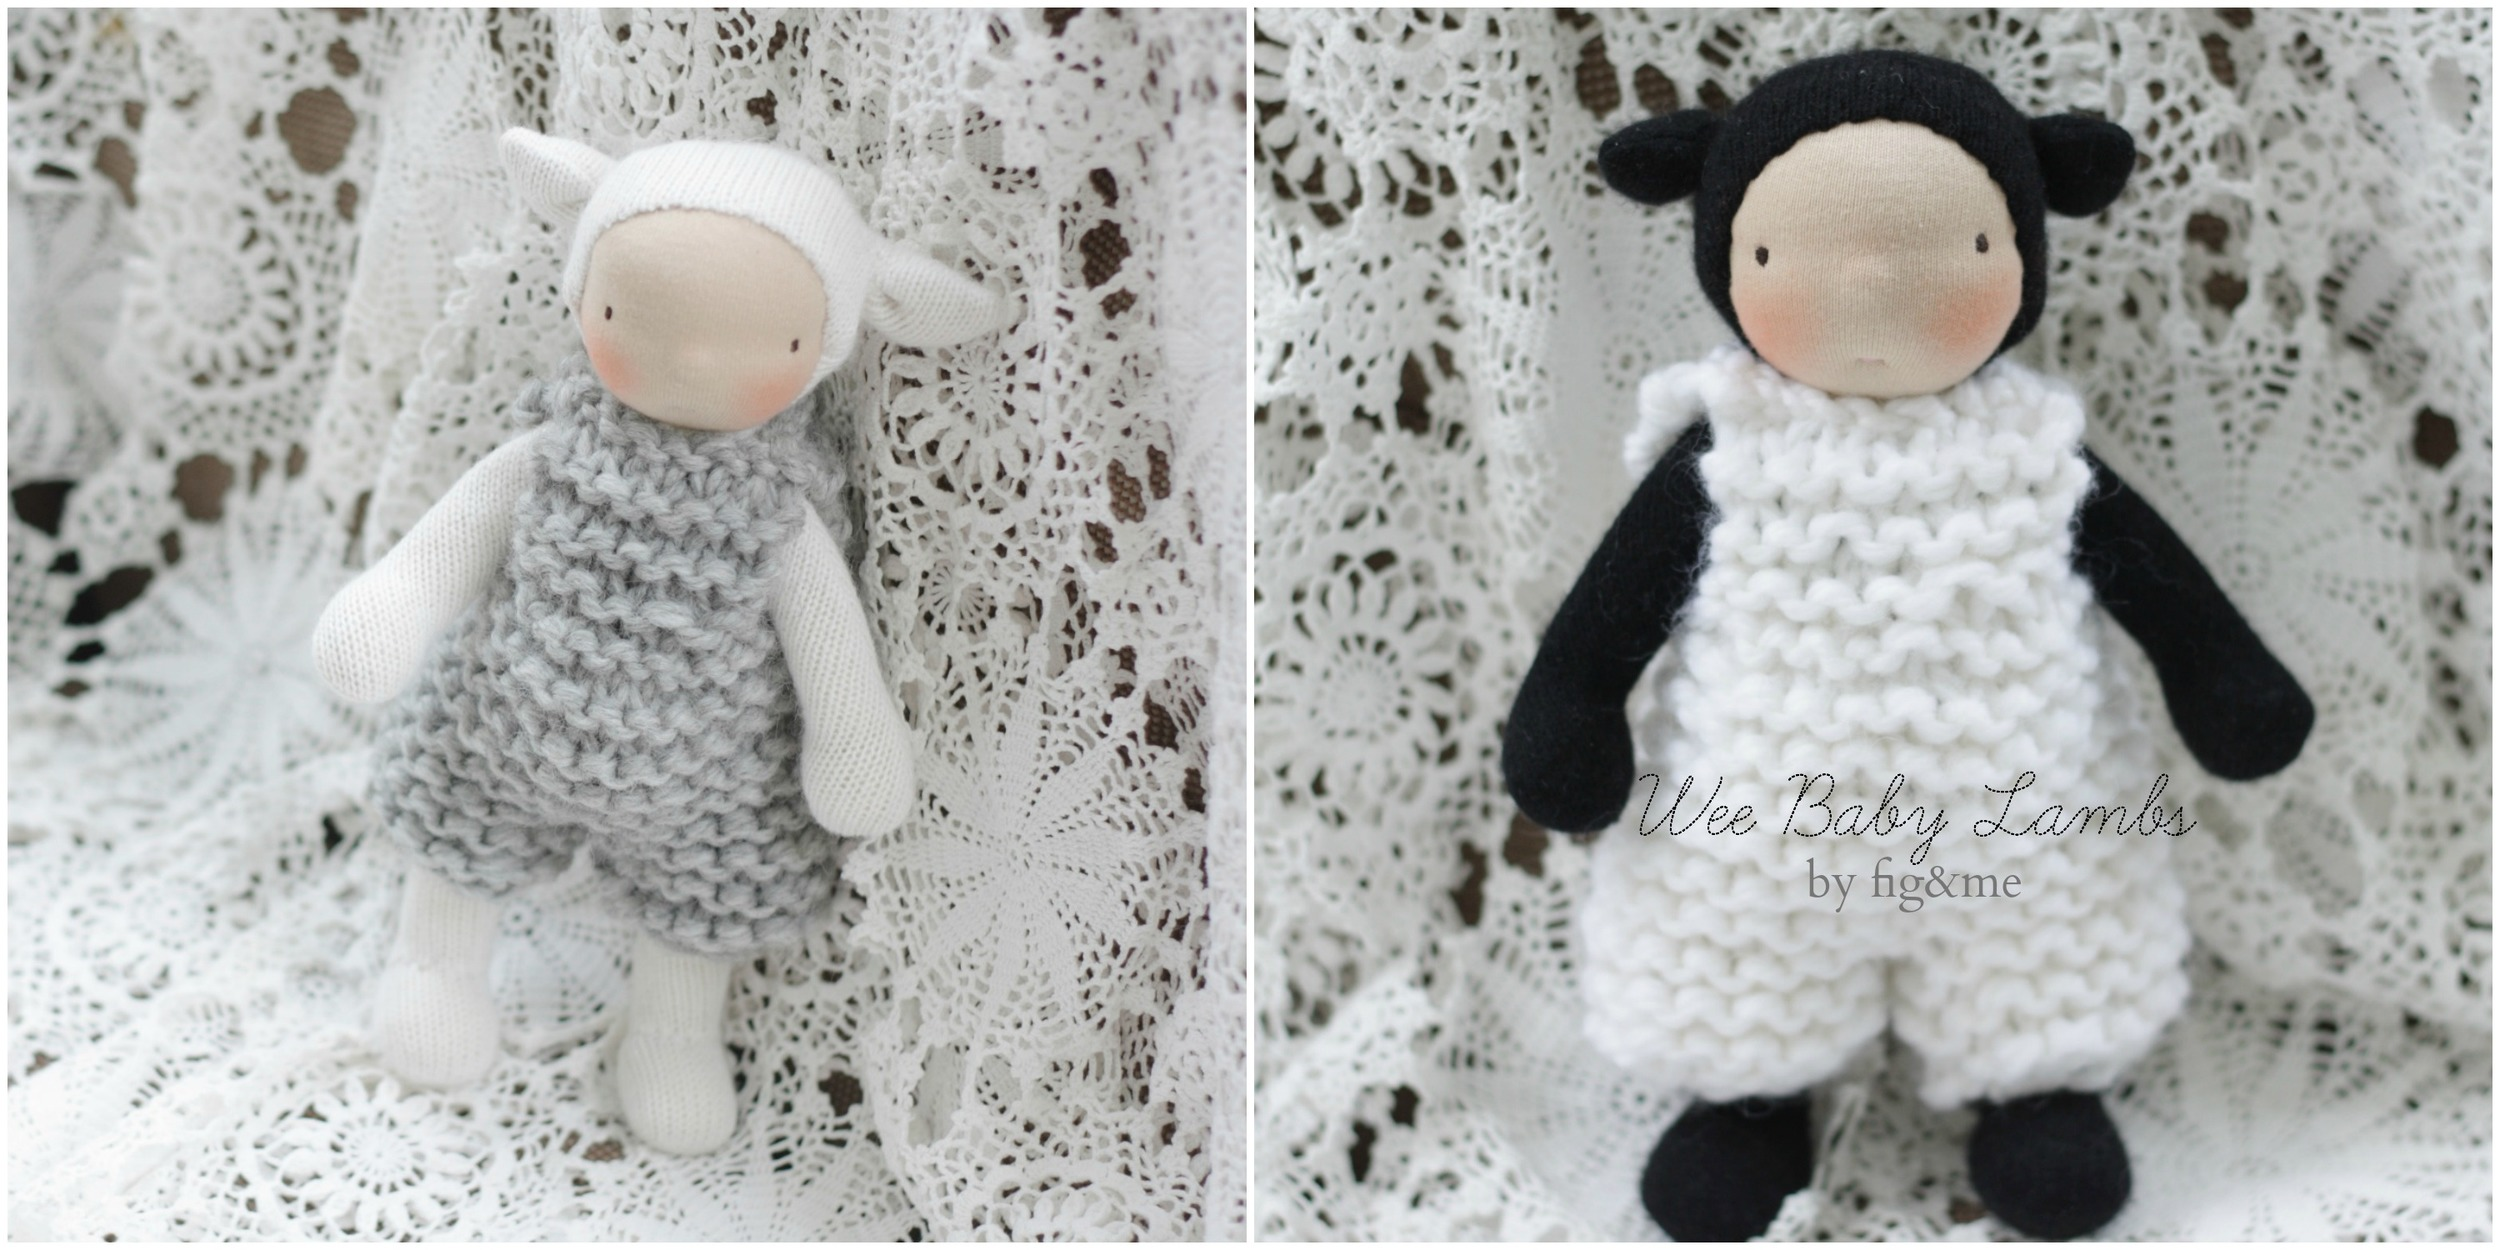 Wee Baby Lambs by Fig and Me.